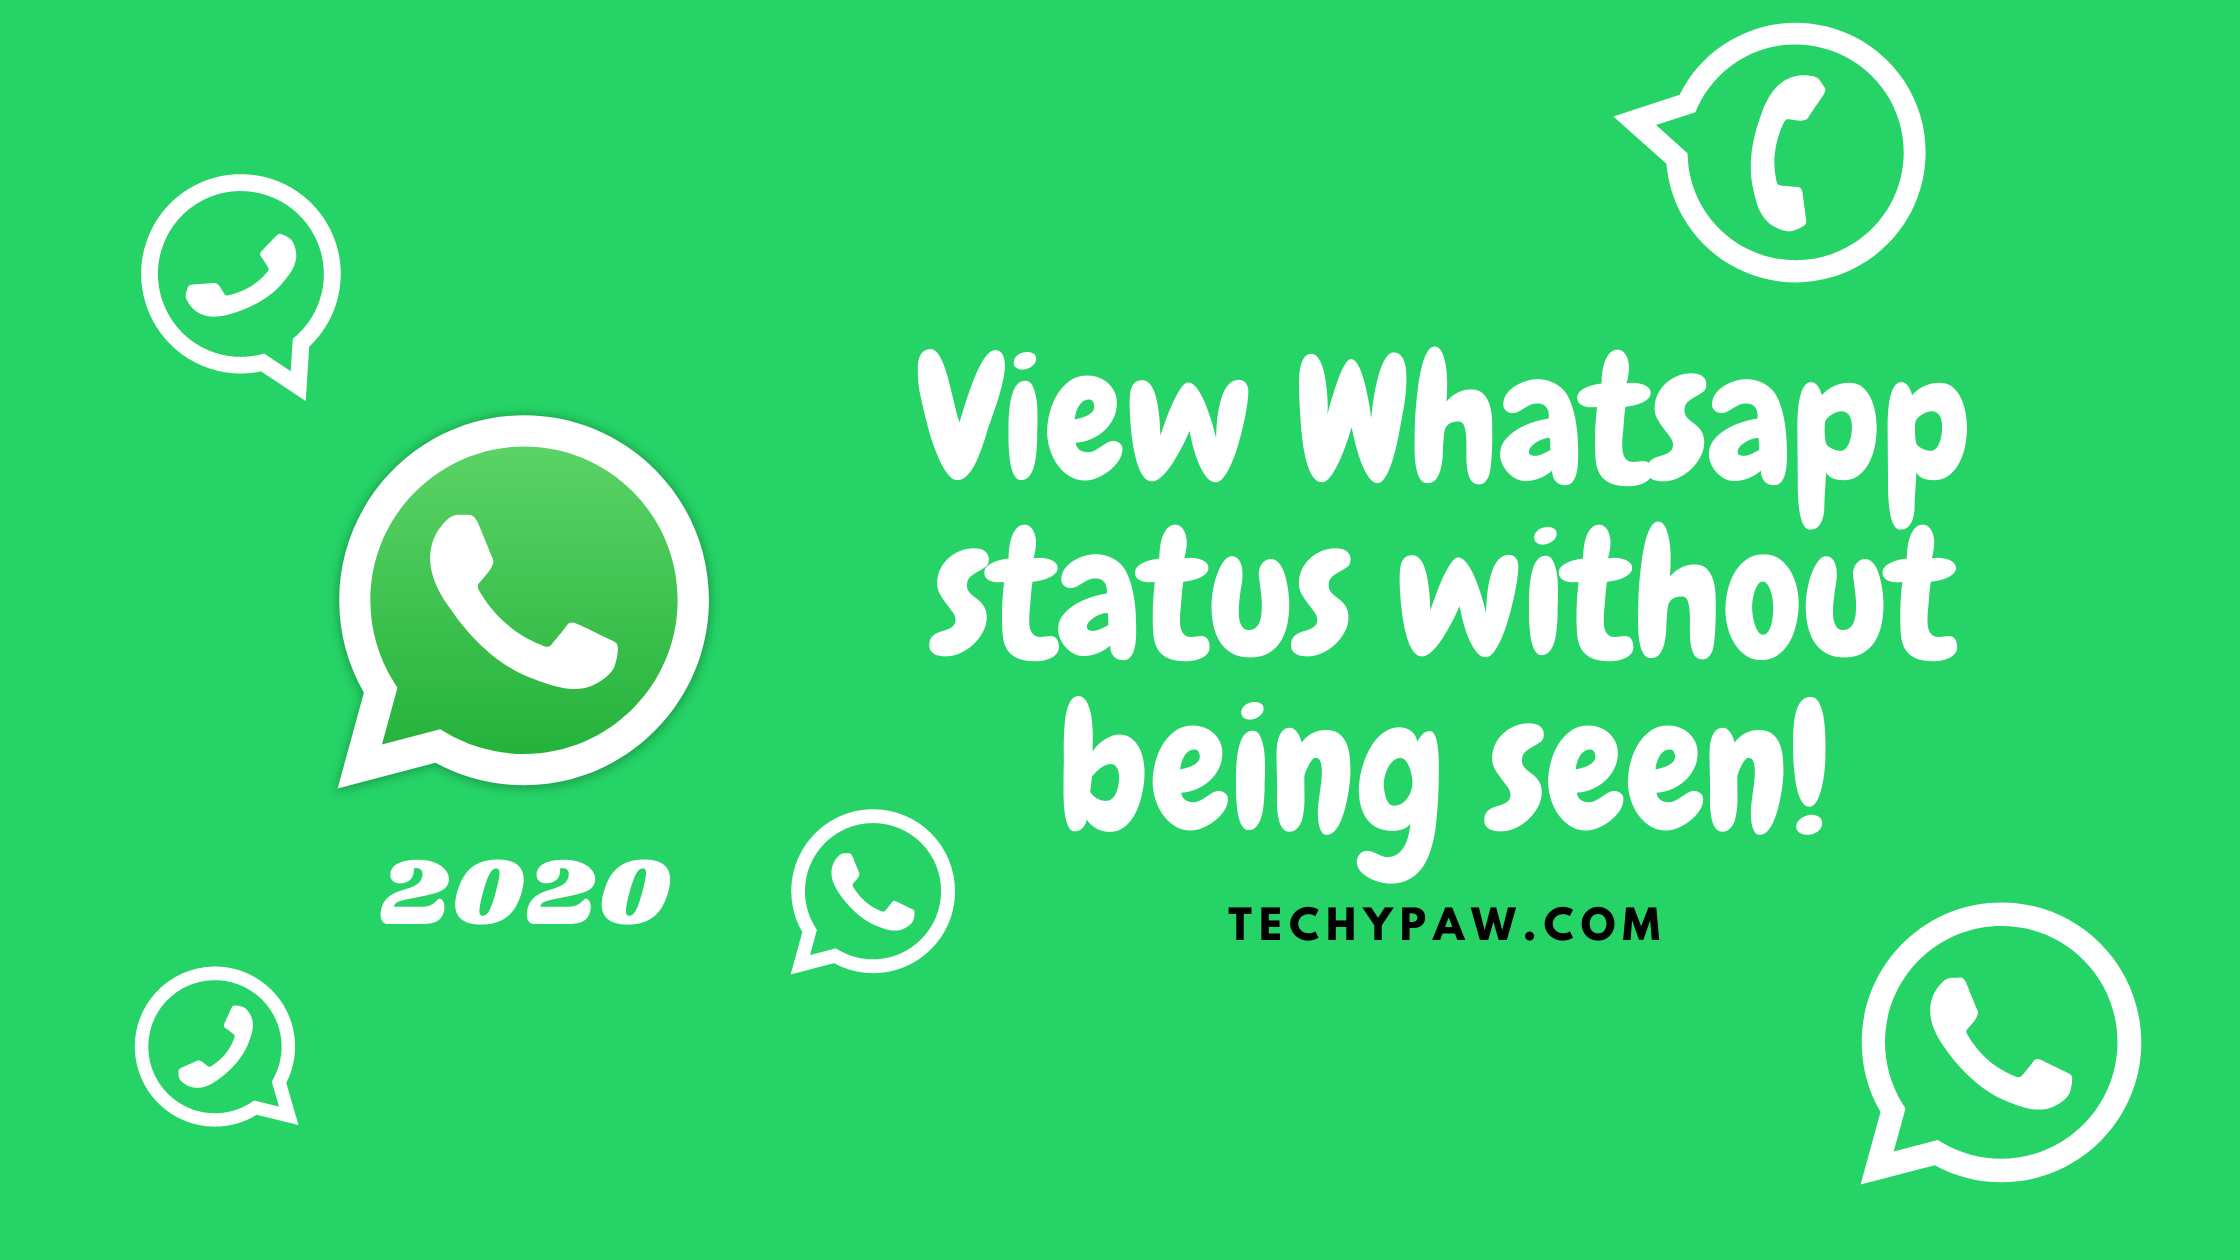 How to View WhatsApp Status Without Being Seen?